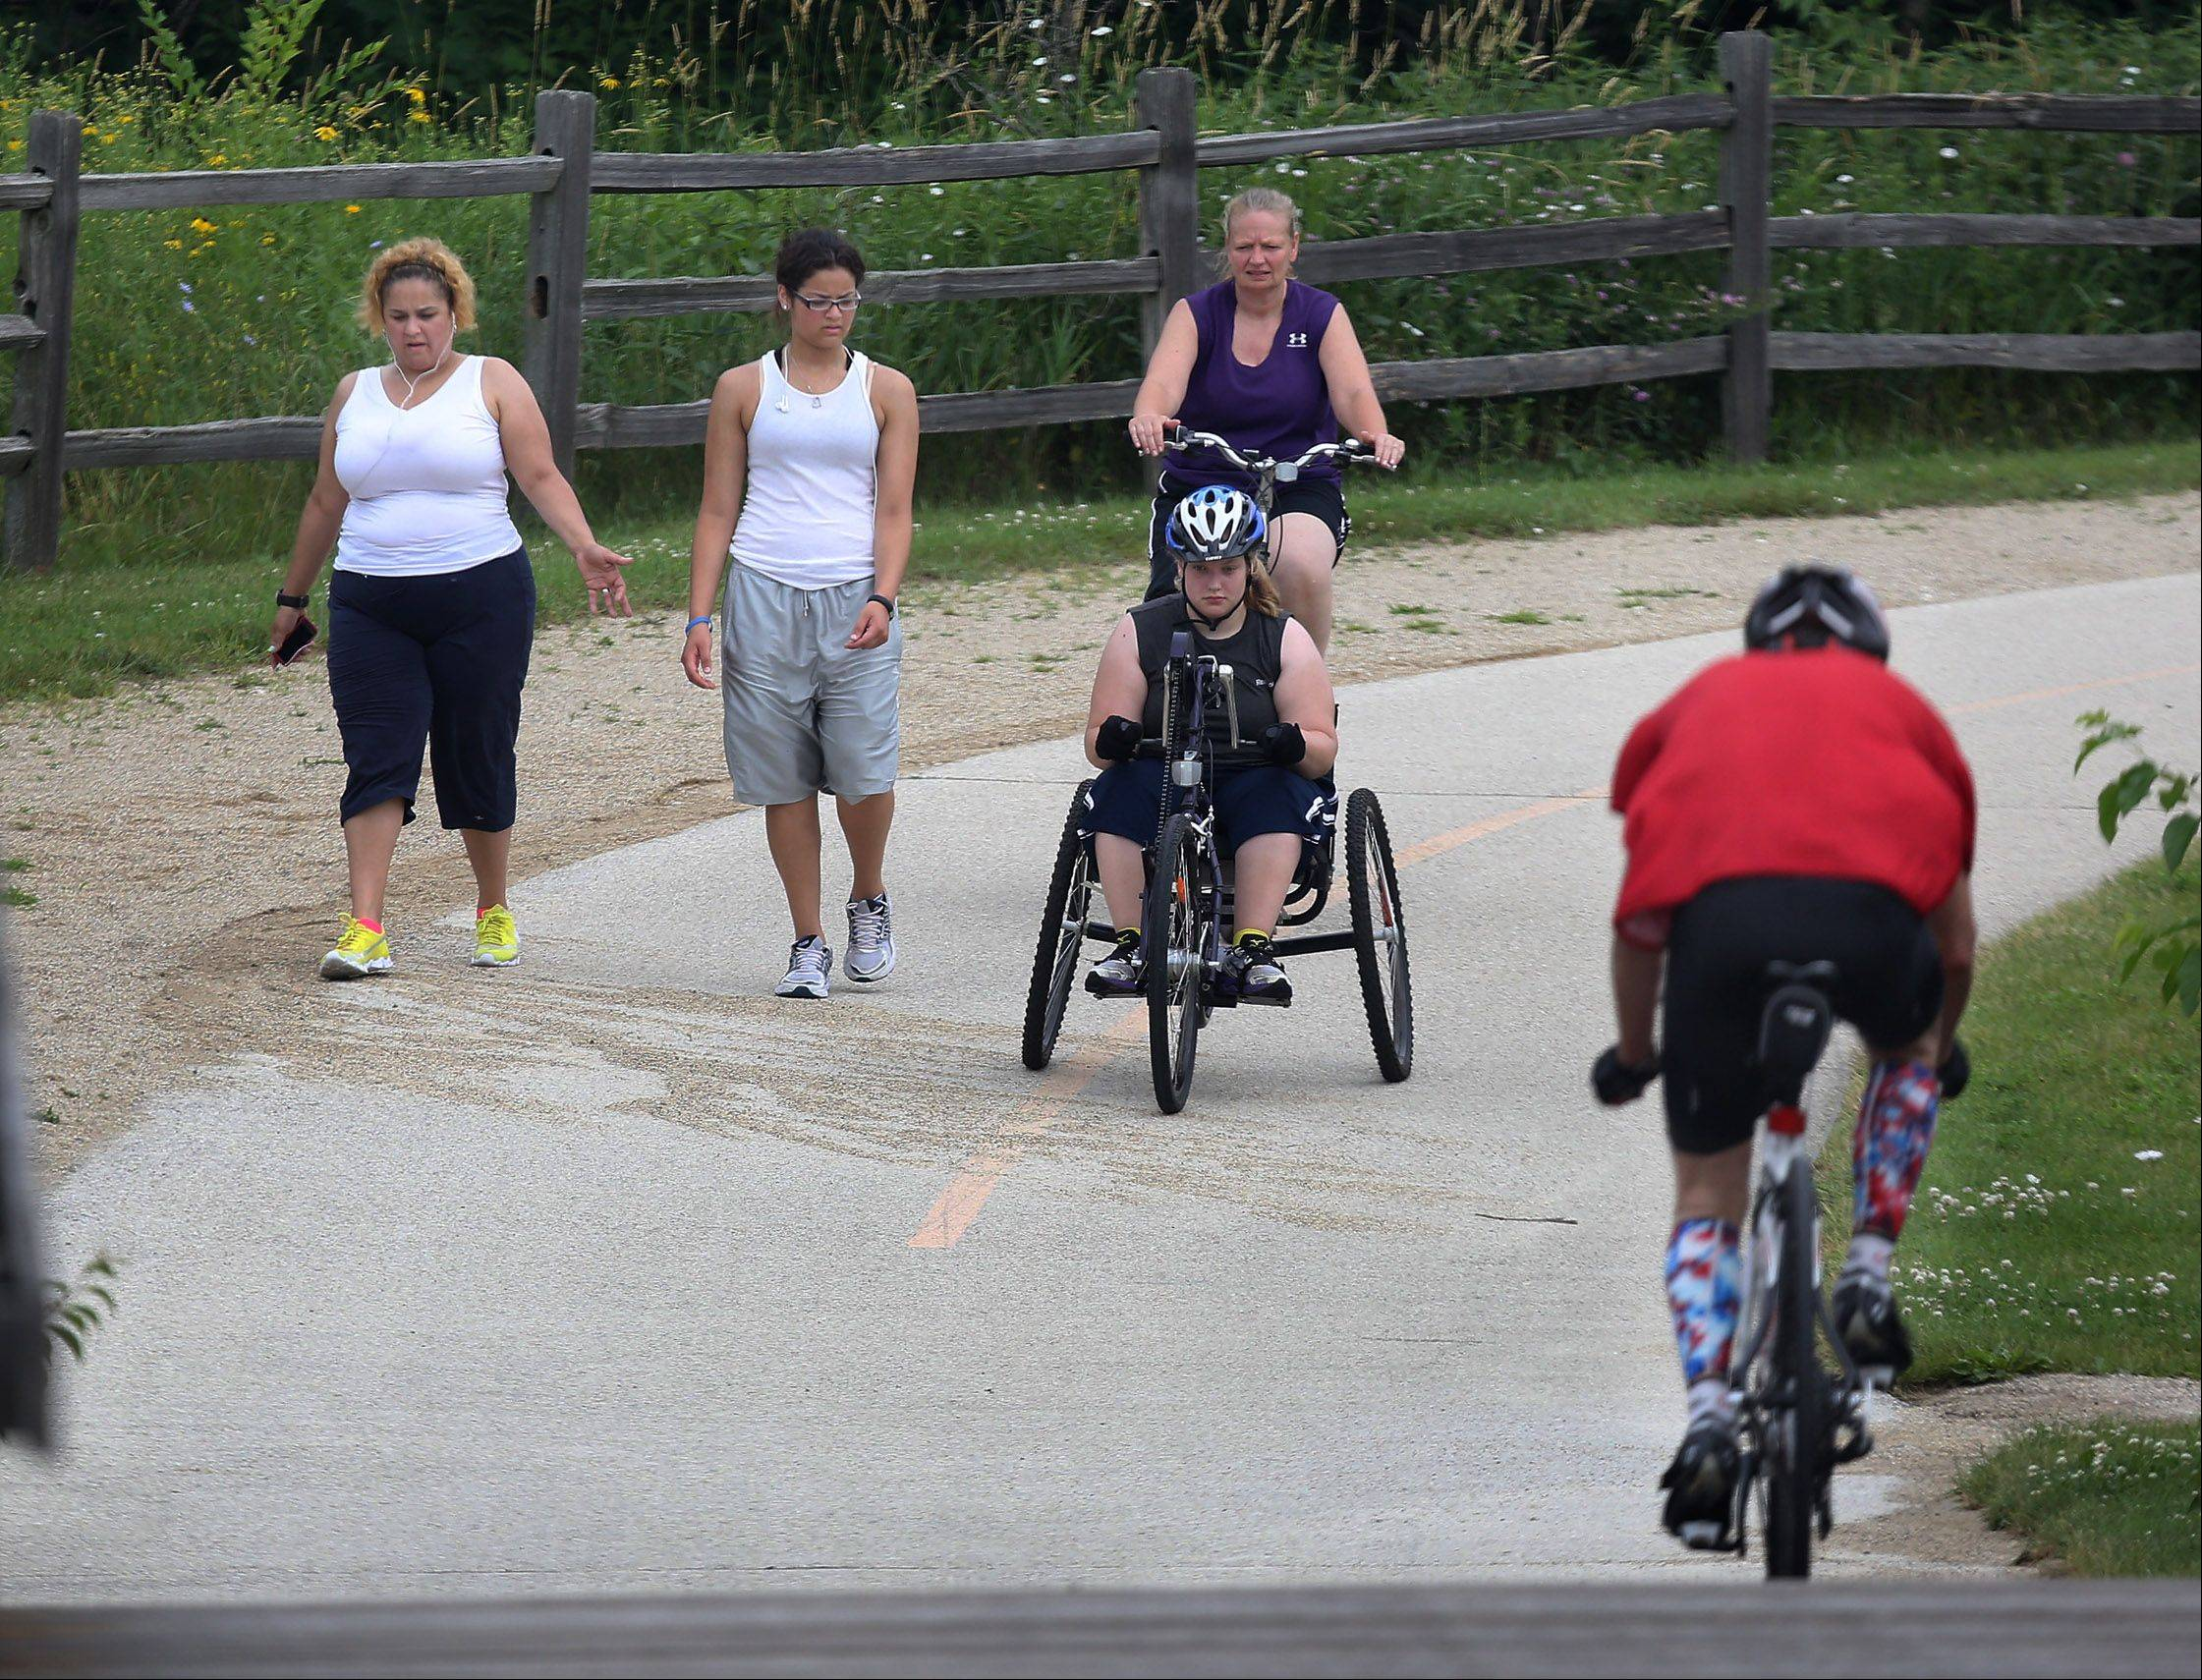 Walkers Sheila Avila, left, and Lizzette Saenz, both of Park City, try to avoid several bicyclists as they share the paths Tuesday in Independence Grove Forest Preserve near Libertyville. Bicycle and walking safety concerns have arisen after several serious accidents have occurred over the summer.